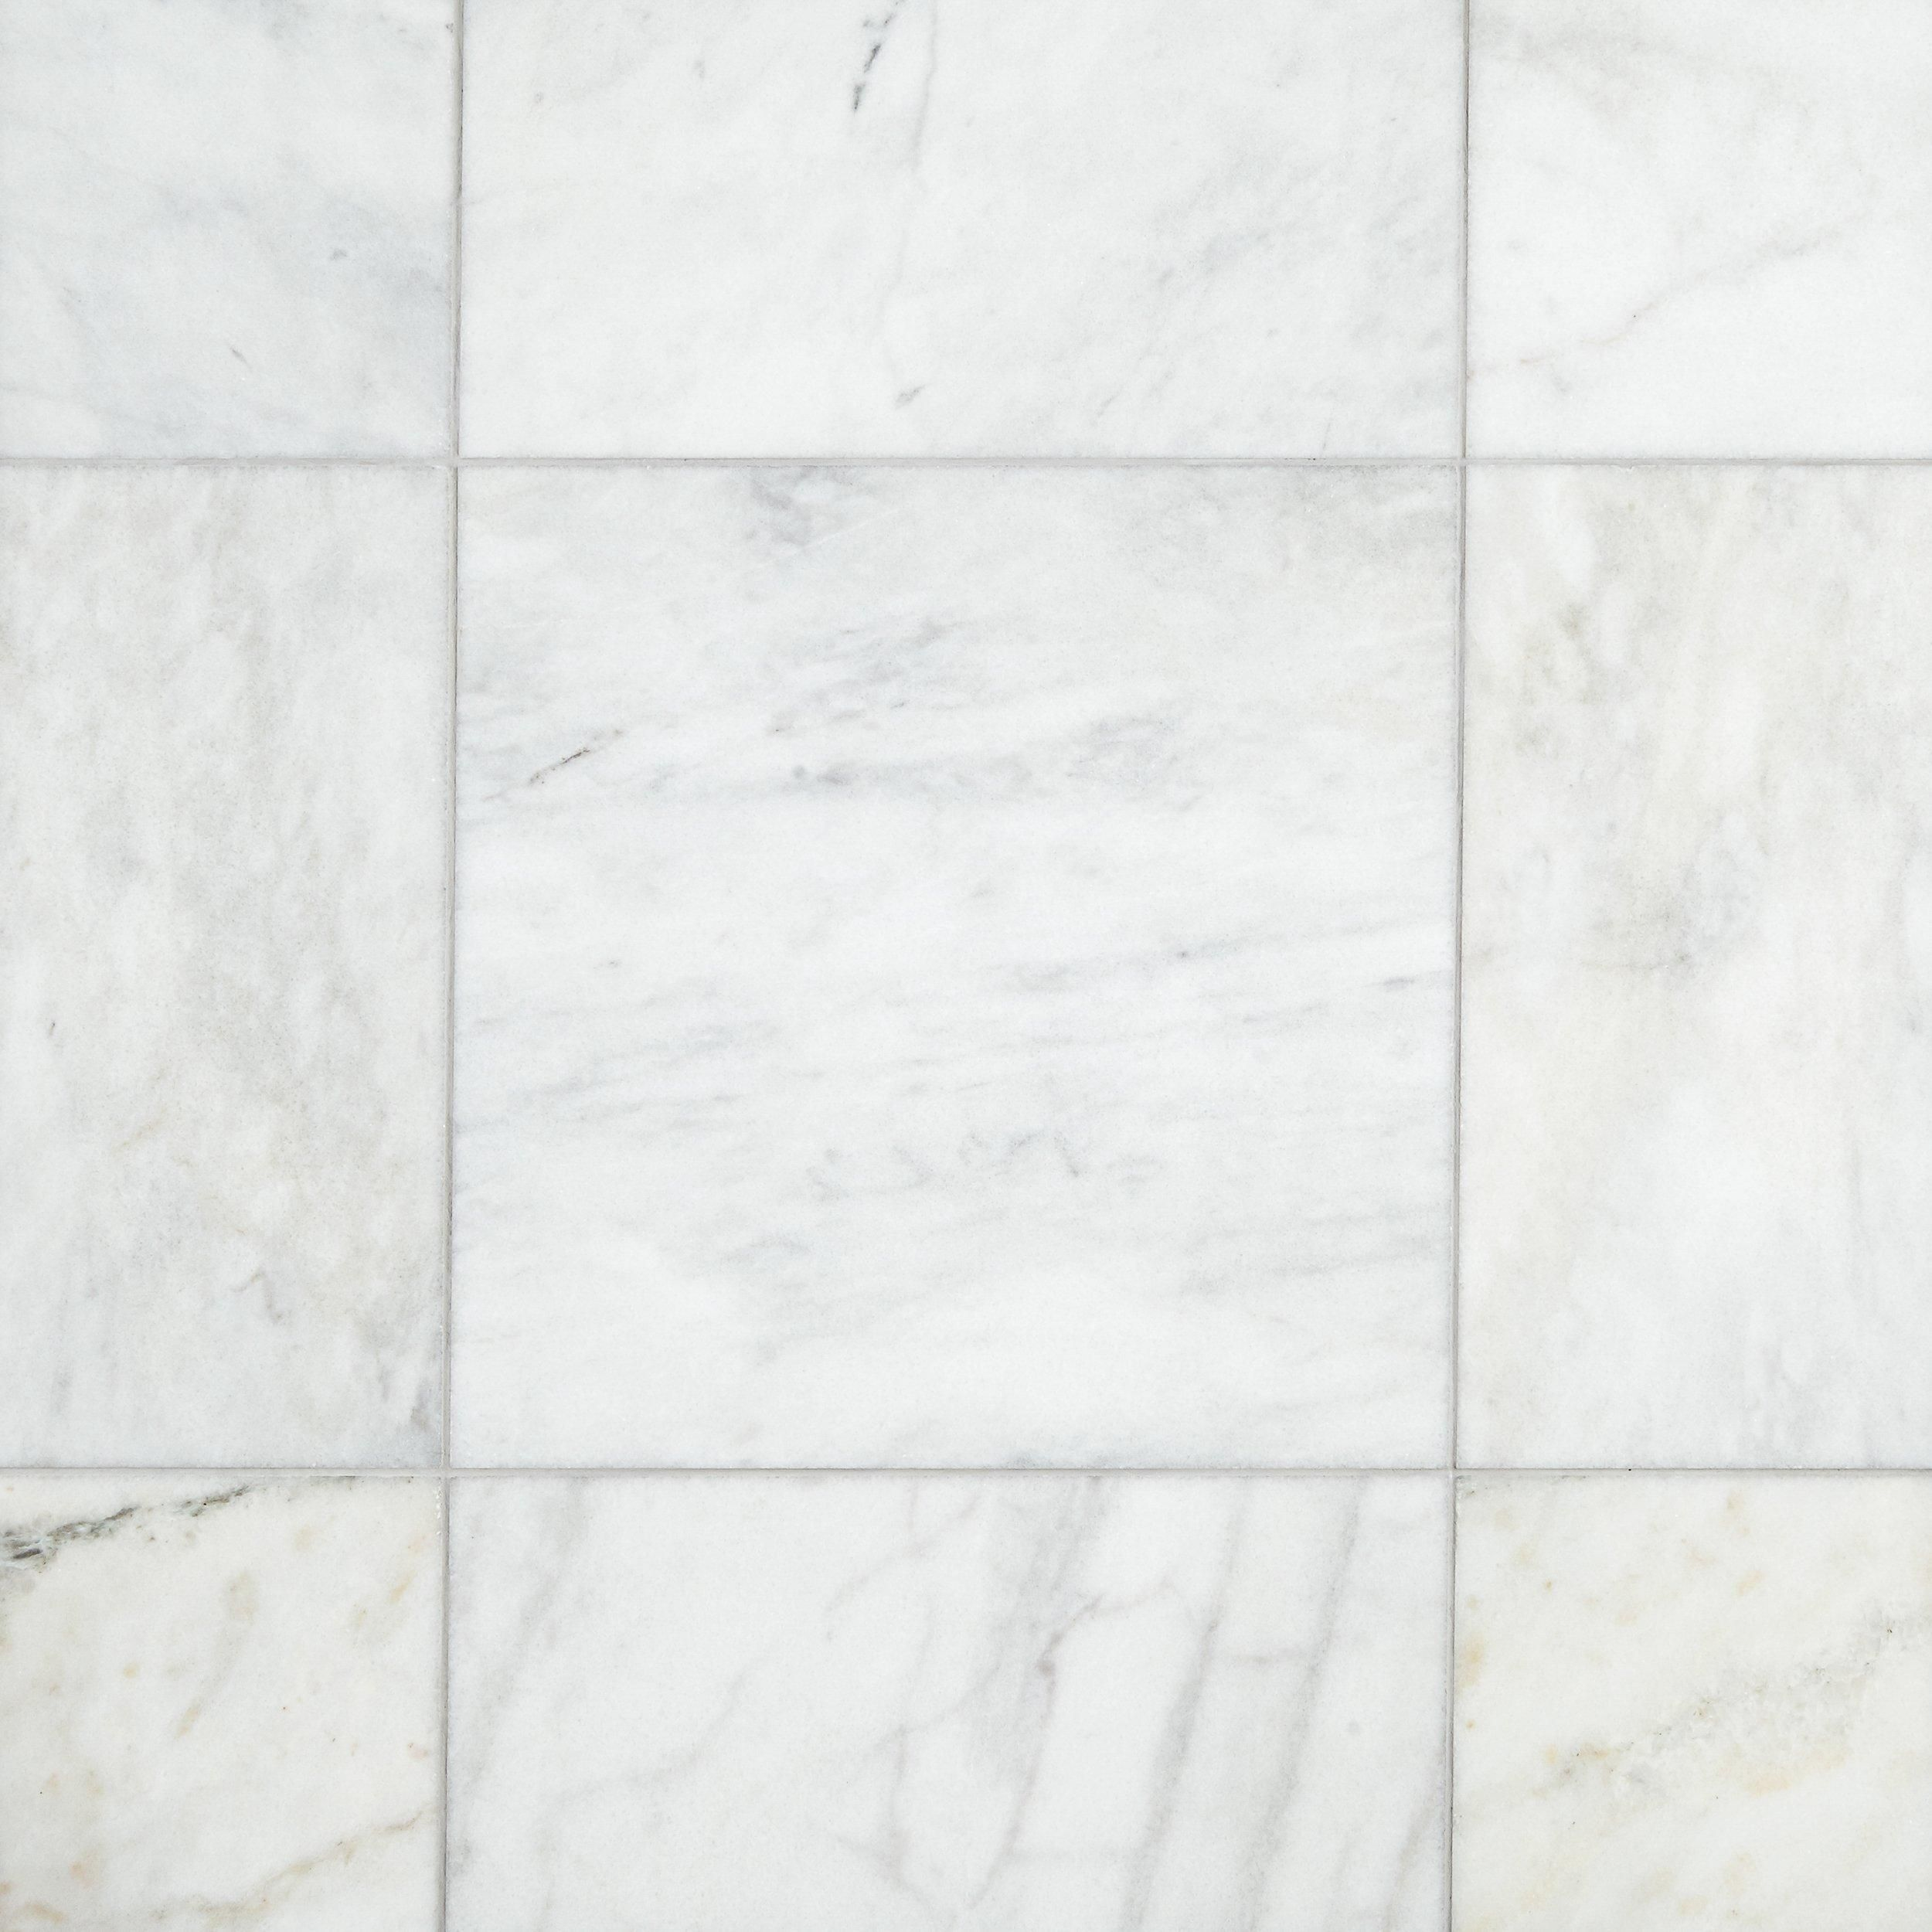 Ocean White Honed Marble Tile In 2020 Honed Marble Tiles Honed Marble Marble Tile